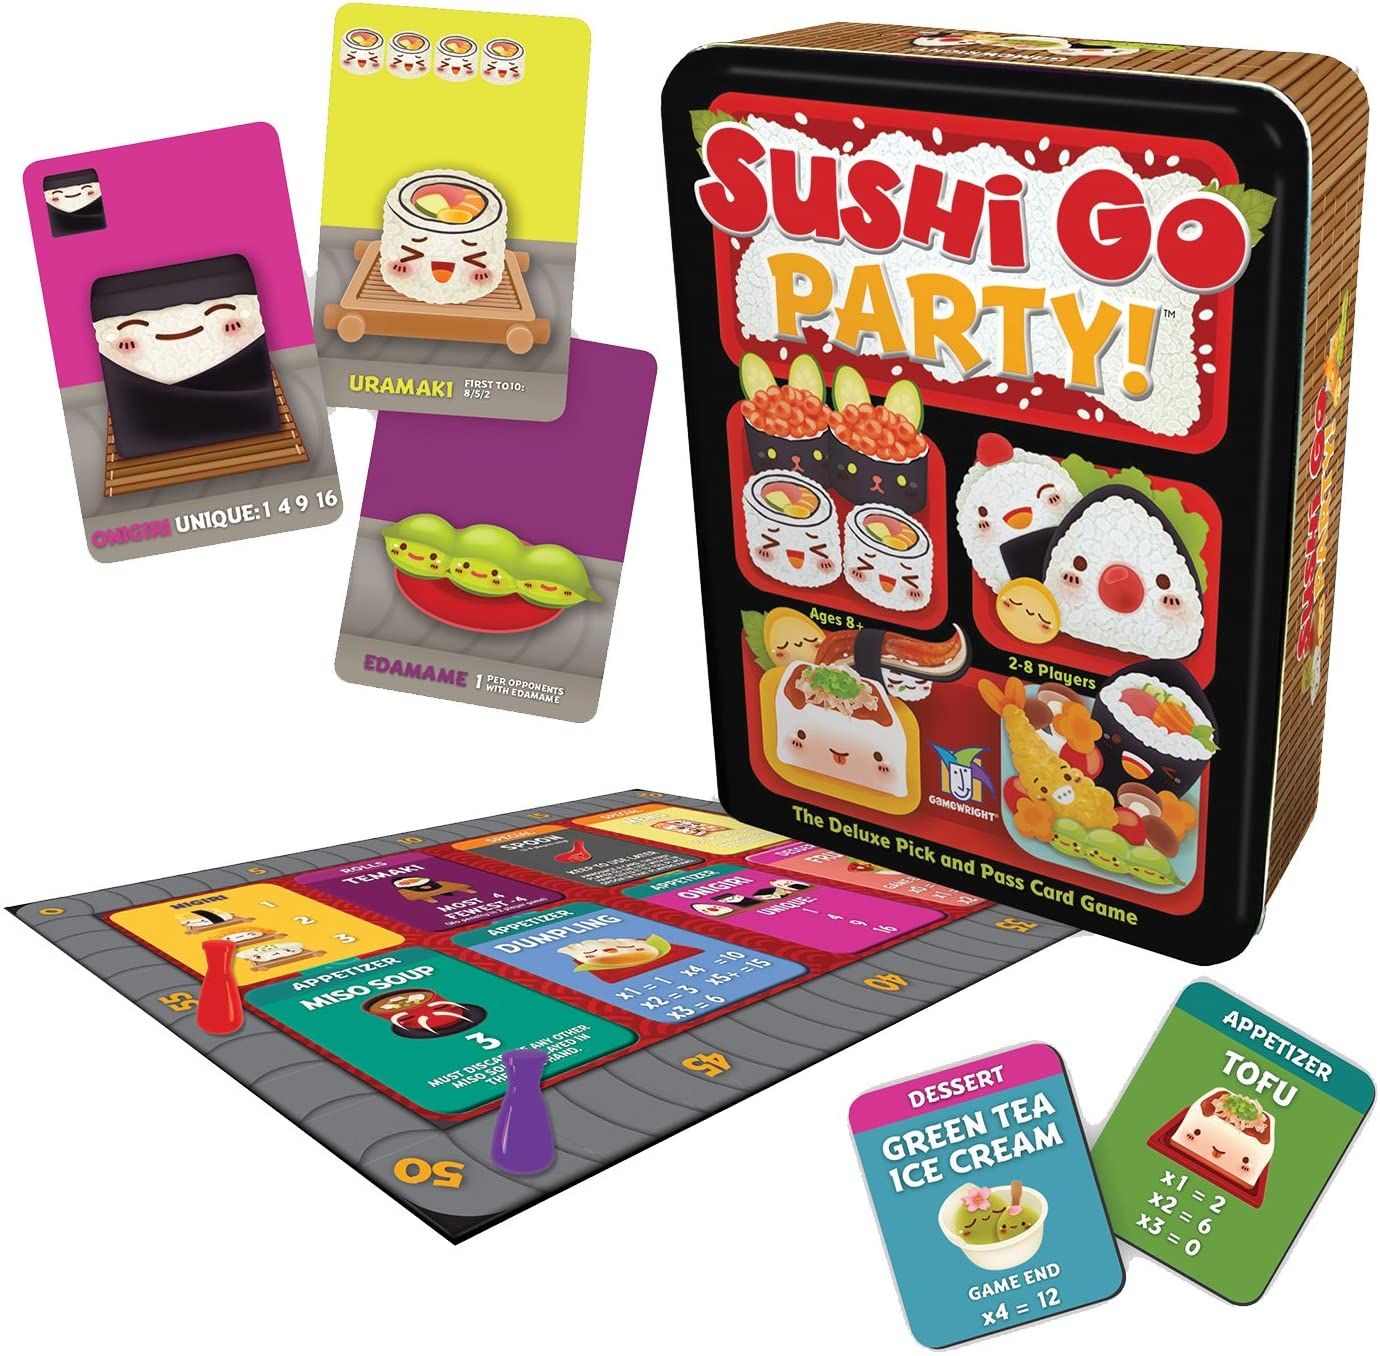 sushi go party contents